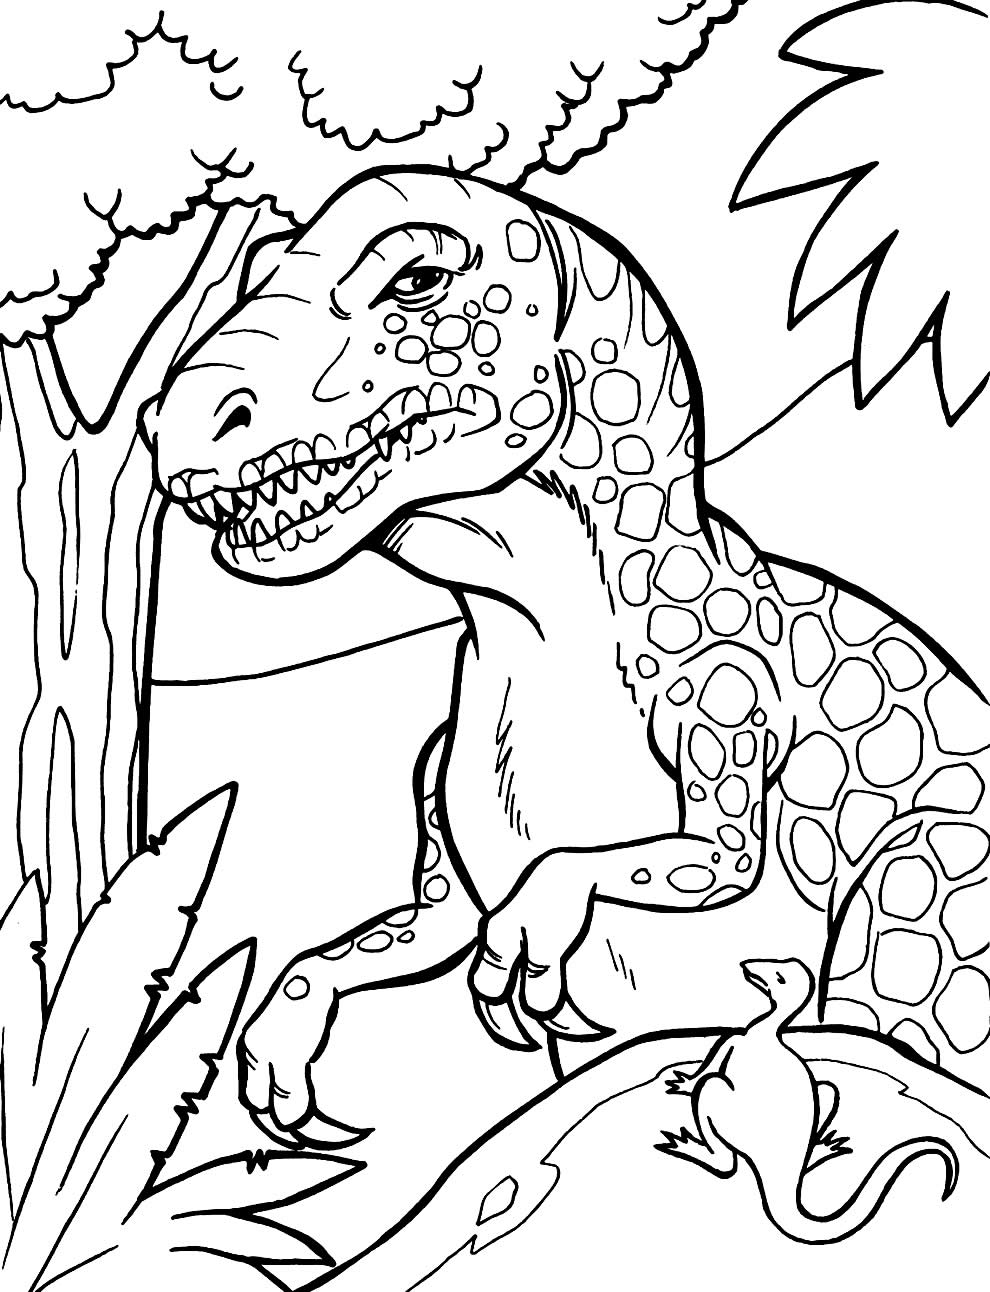 Dinosaur template for coloring